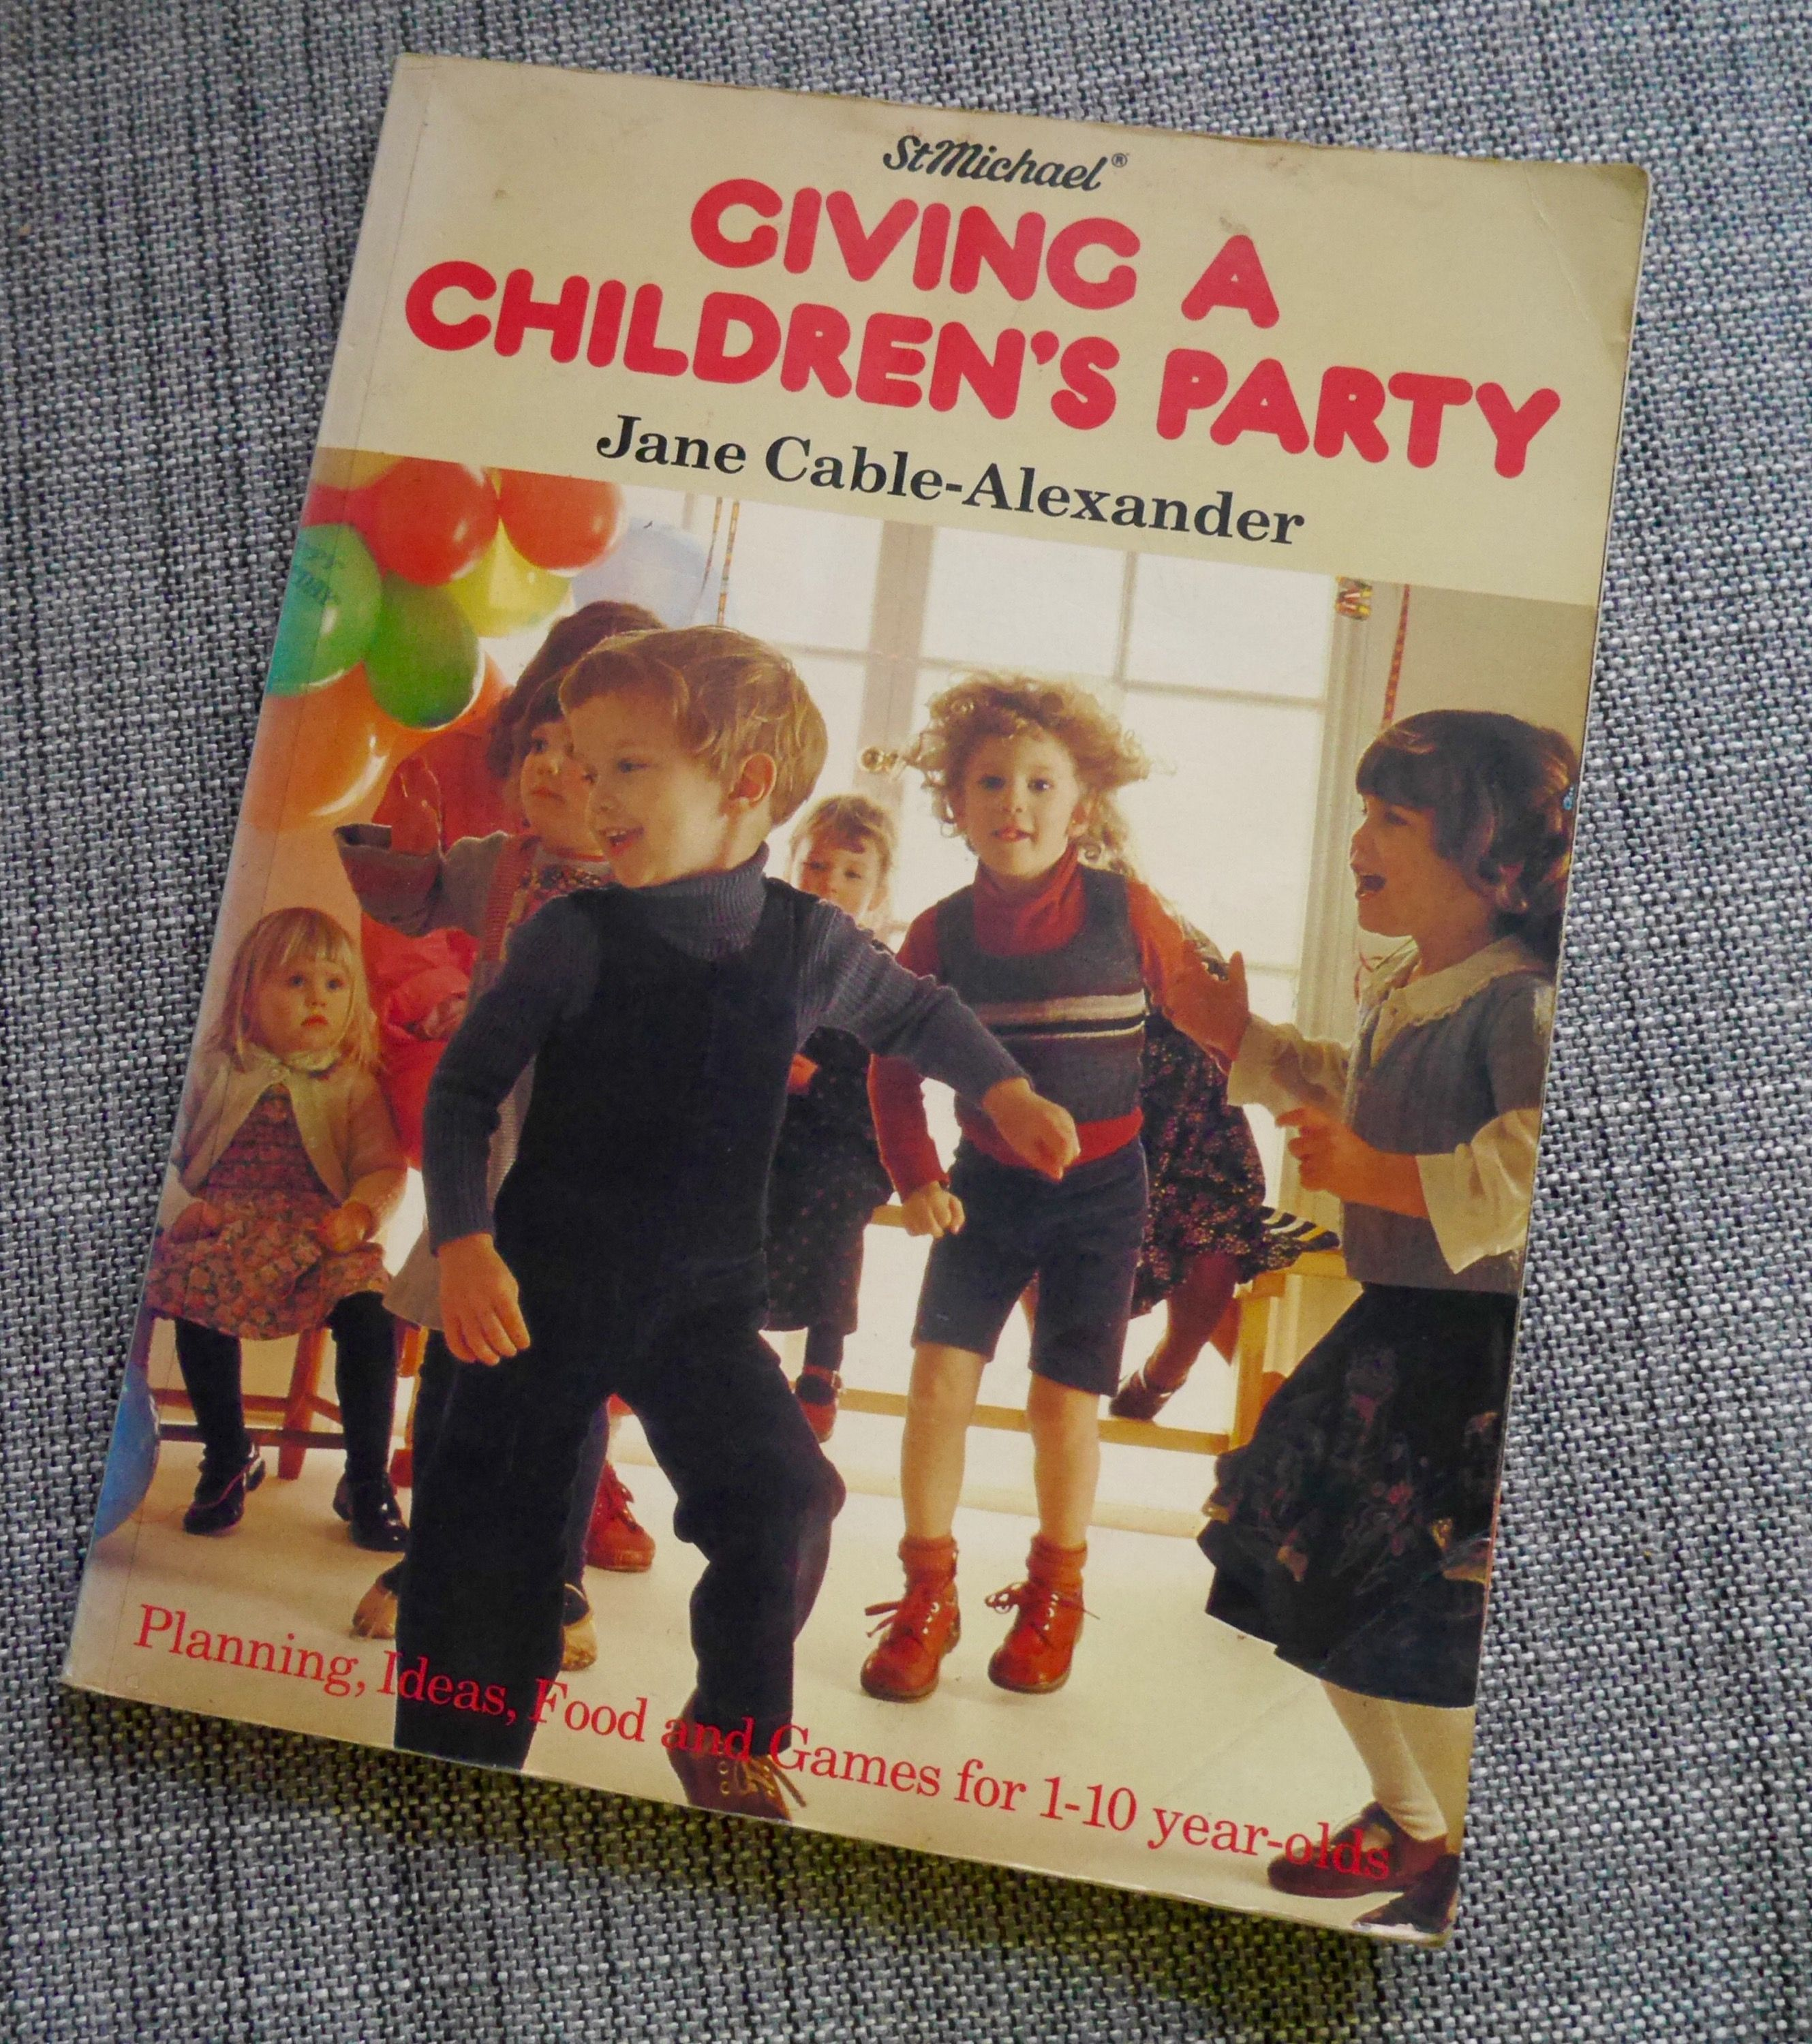 Children's birthday party book from 1980 - you have to read some of these tips